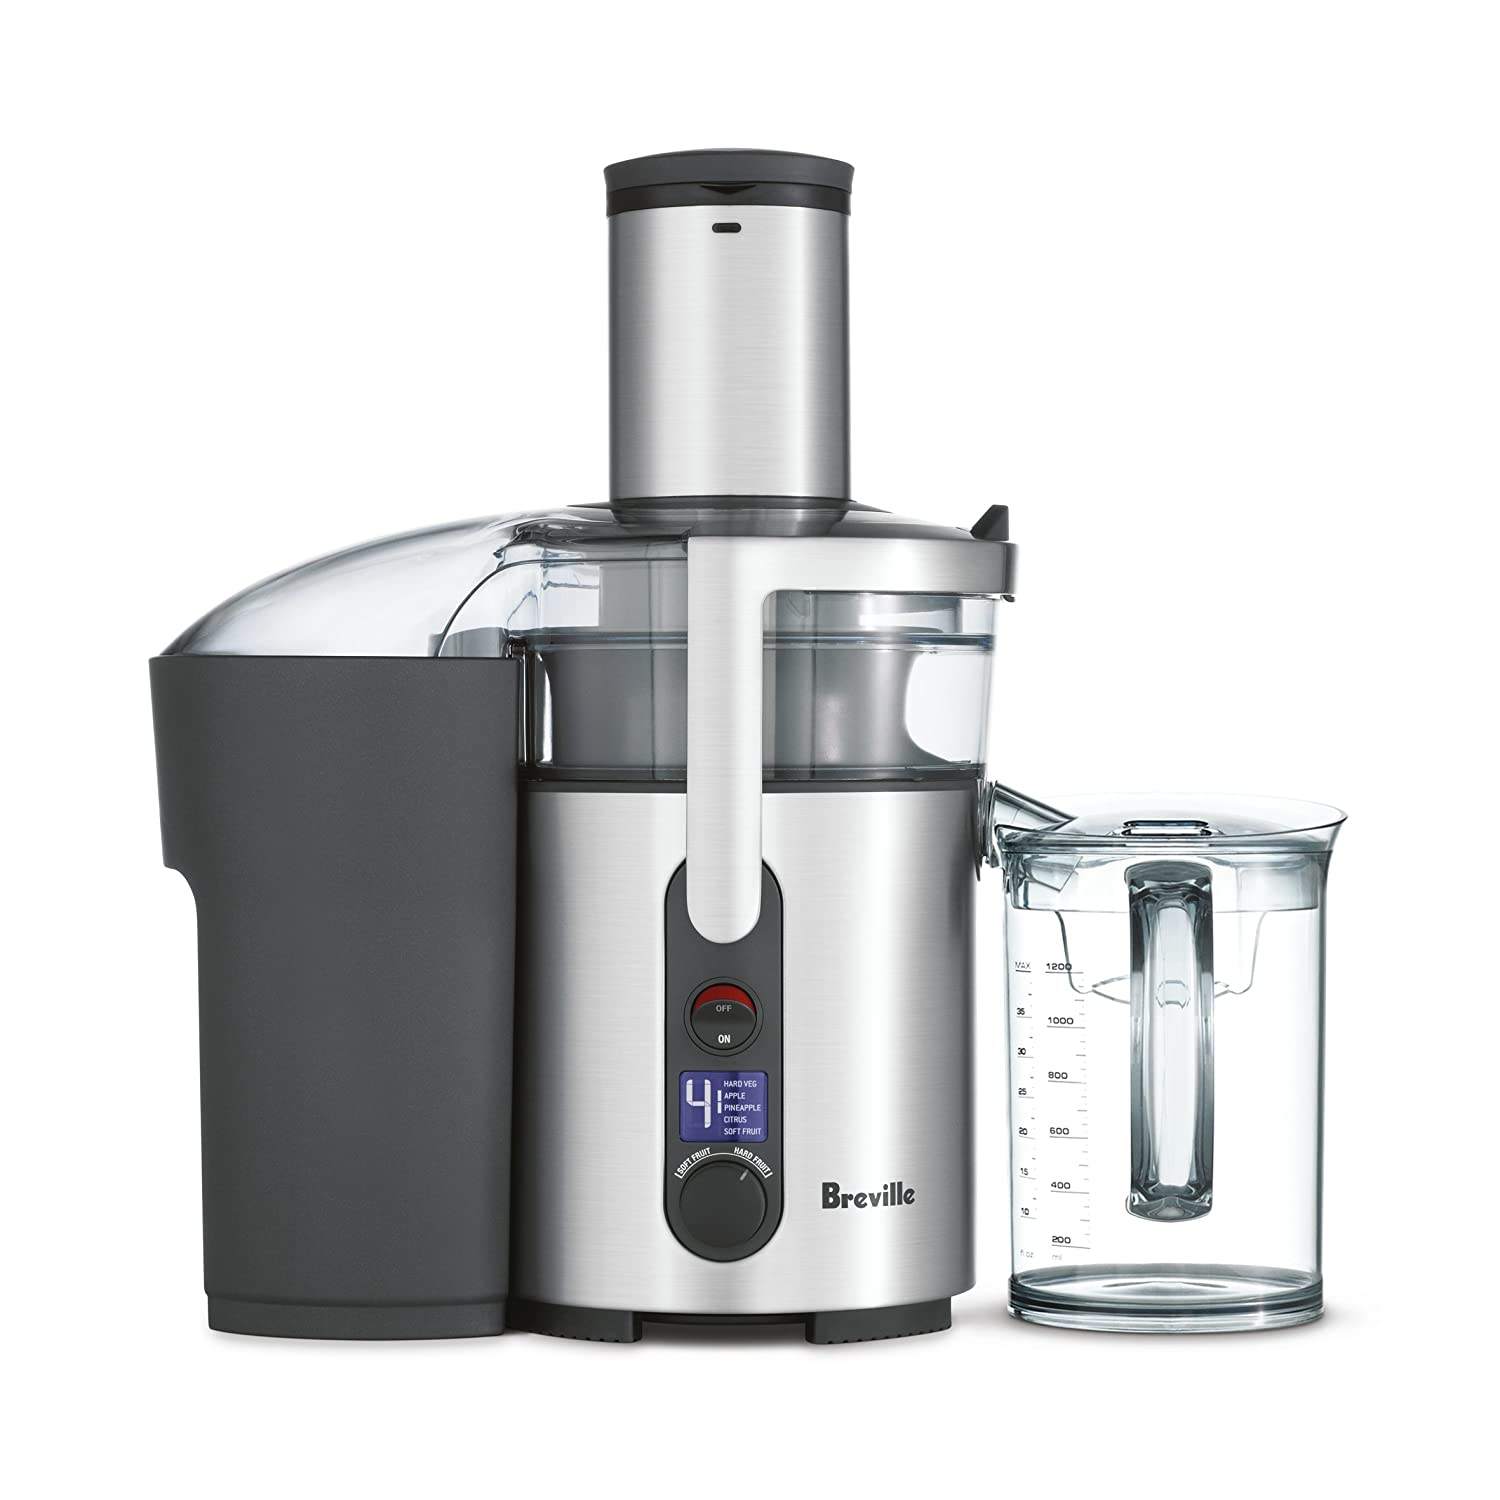 41cb3c443b4 Breville BJE520BSS Ikon Froojie Juice Fountain, Brushed Stainless Steel:  Small Kitchen Appliances: Amazon.com.au